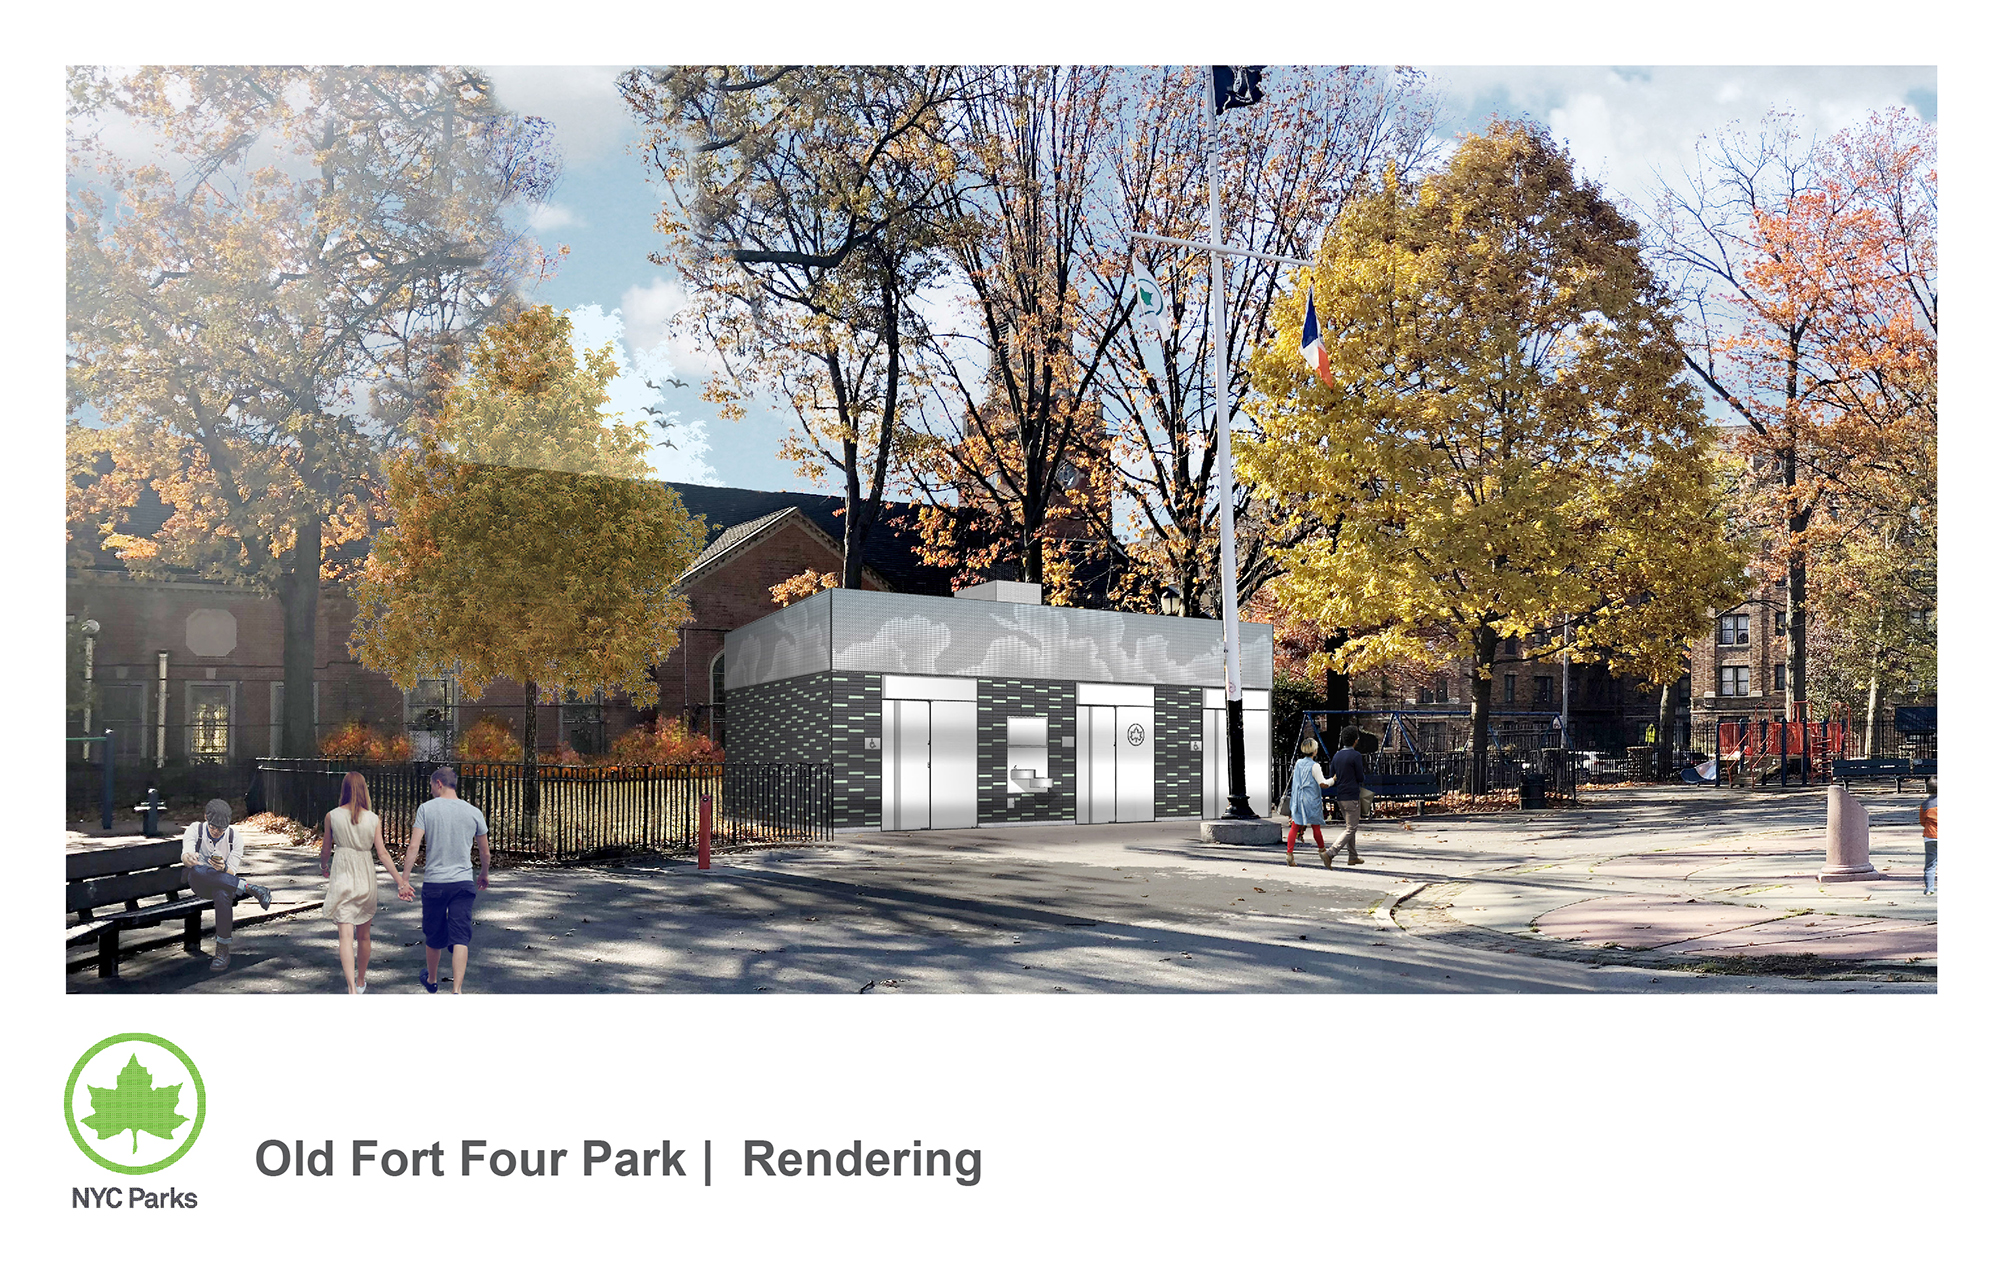 Design of Washington's Walk Fort Four Playground Comfort Station Construction